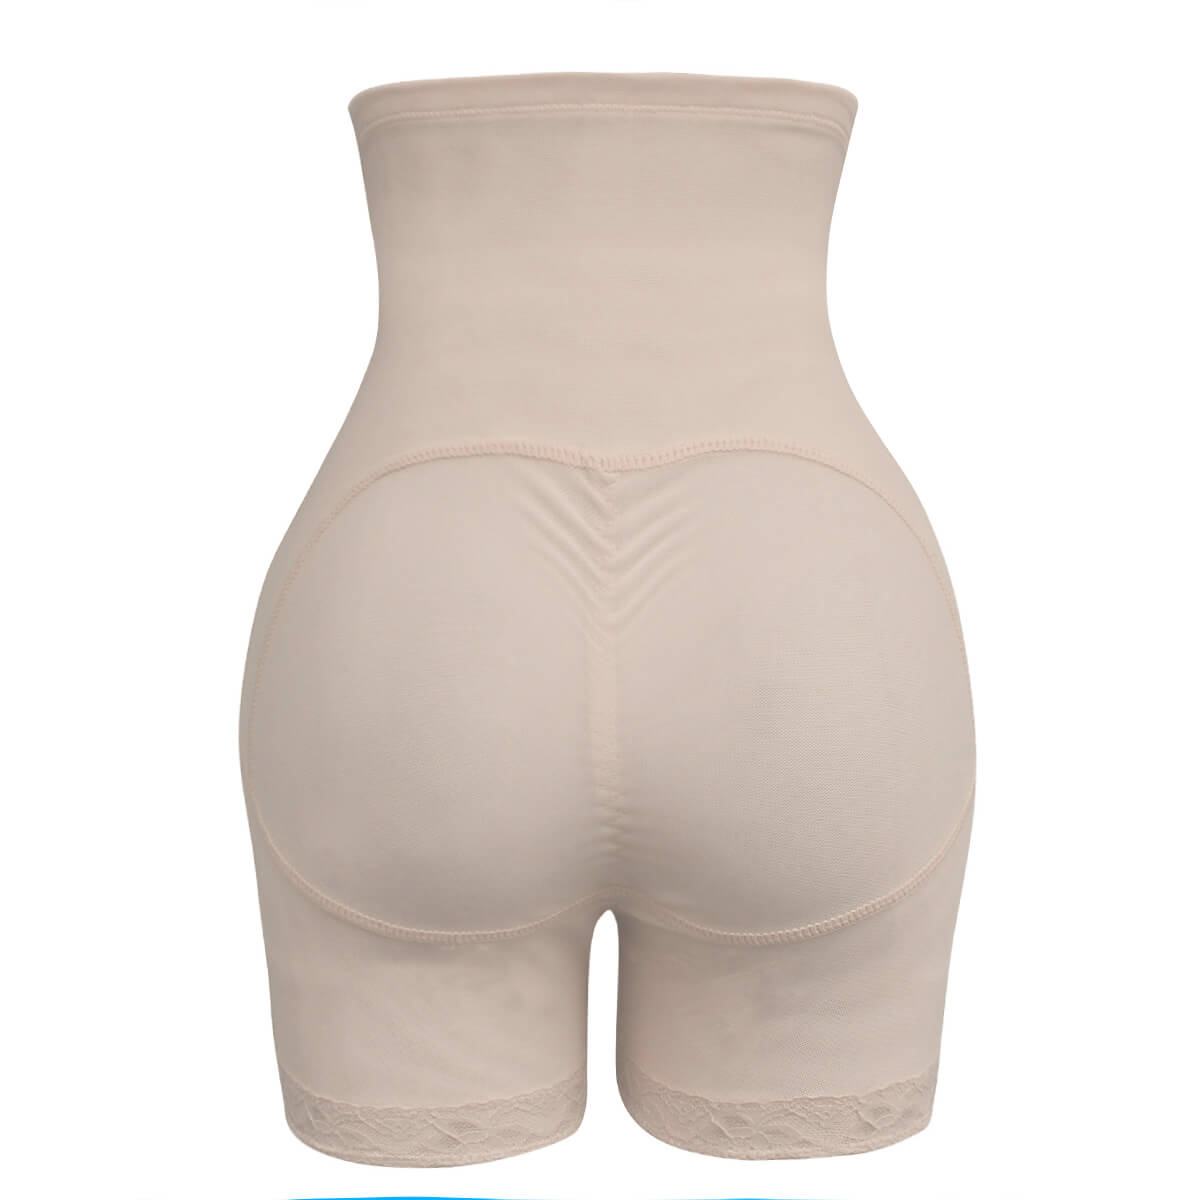 Women Shapewear Thigh Slimmer Butt Lifter High Waist Tummy Control